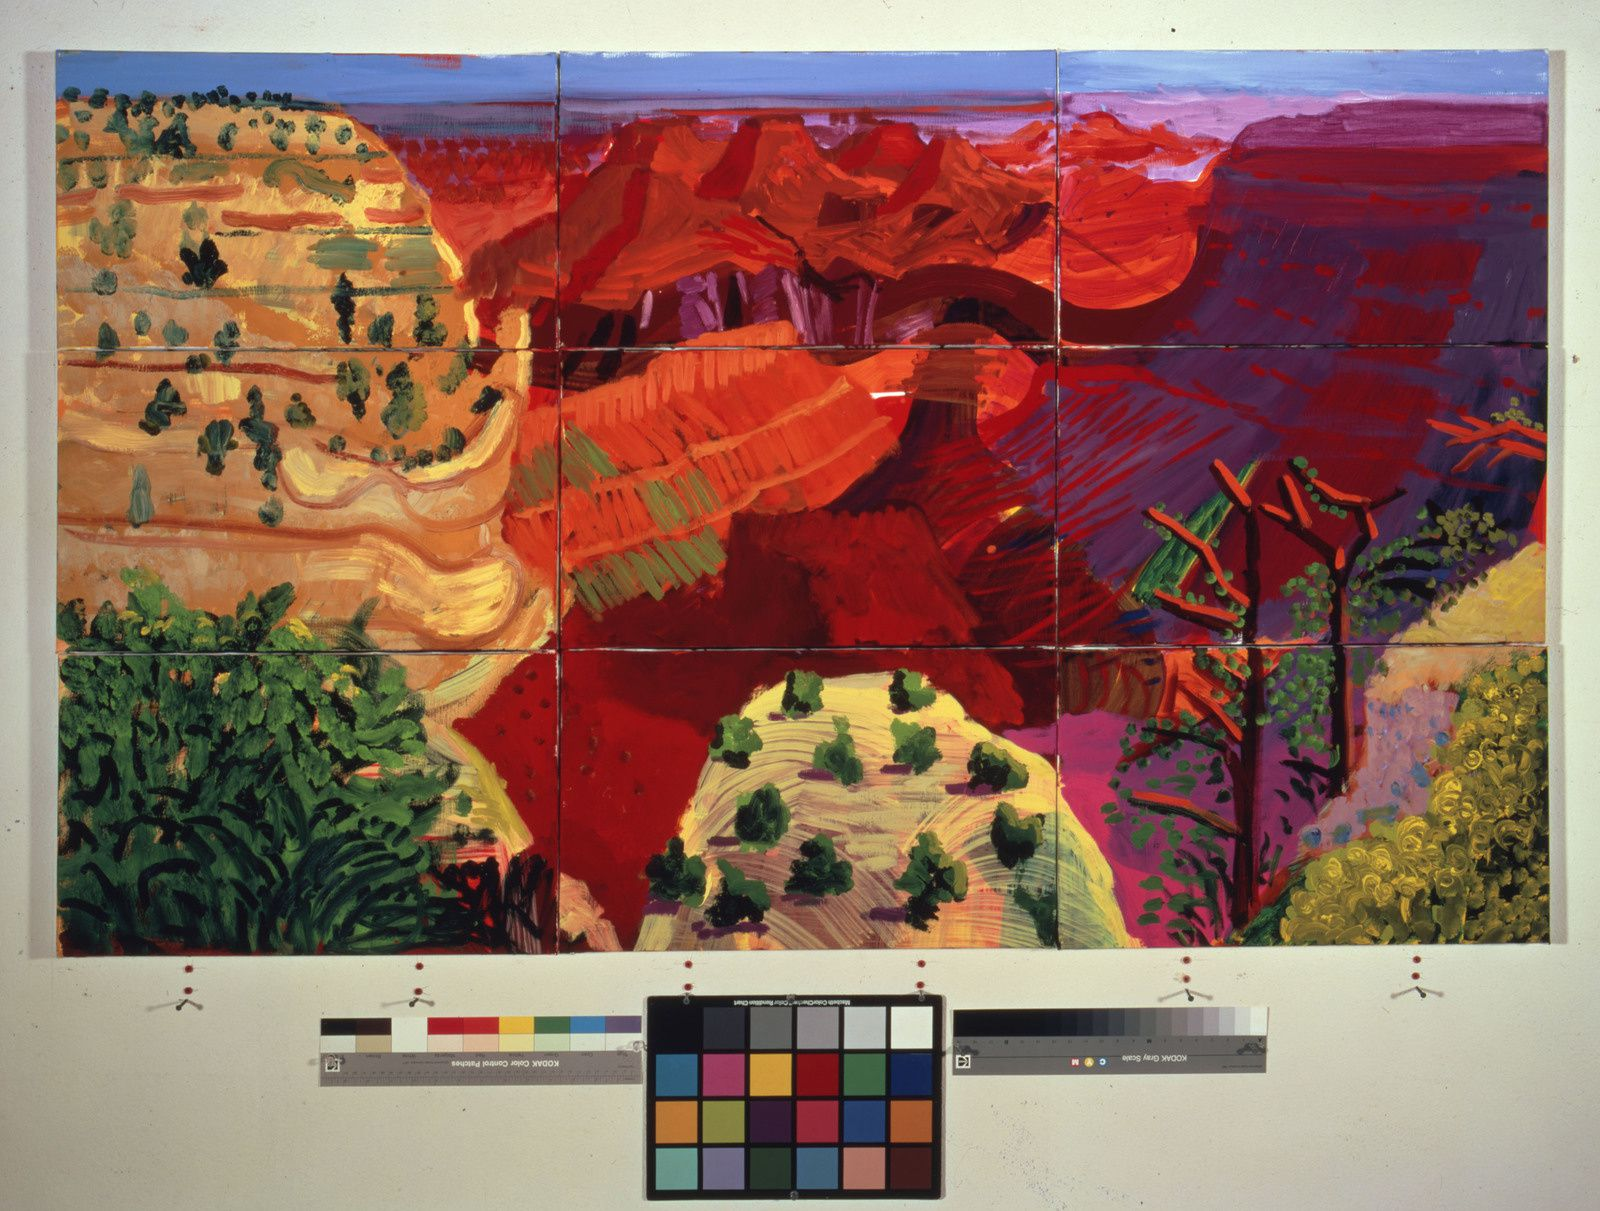 """9 Canvas Study of the Grand Canyon"", 1998 de David HOCKNEY - Photo Richard Schmidt"